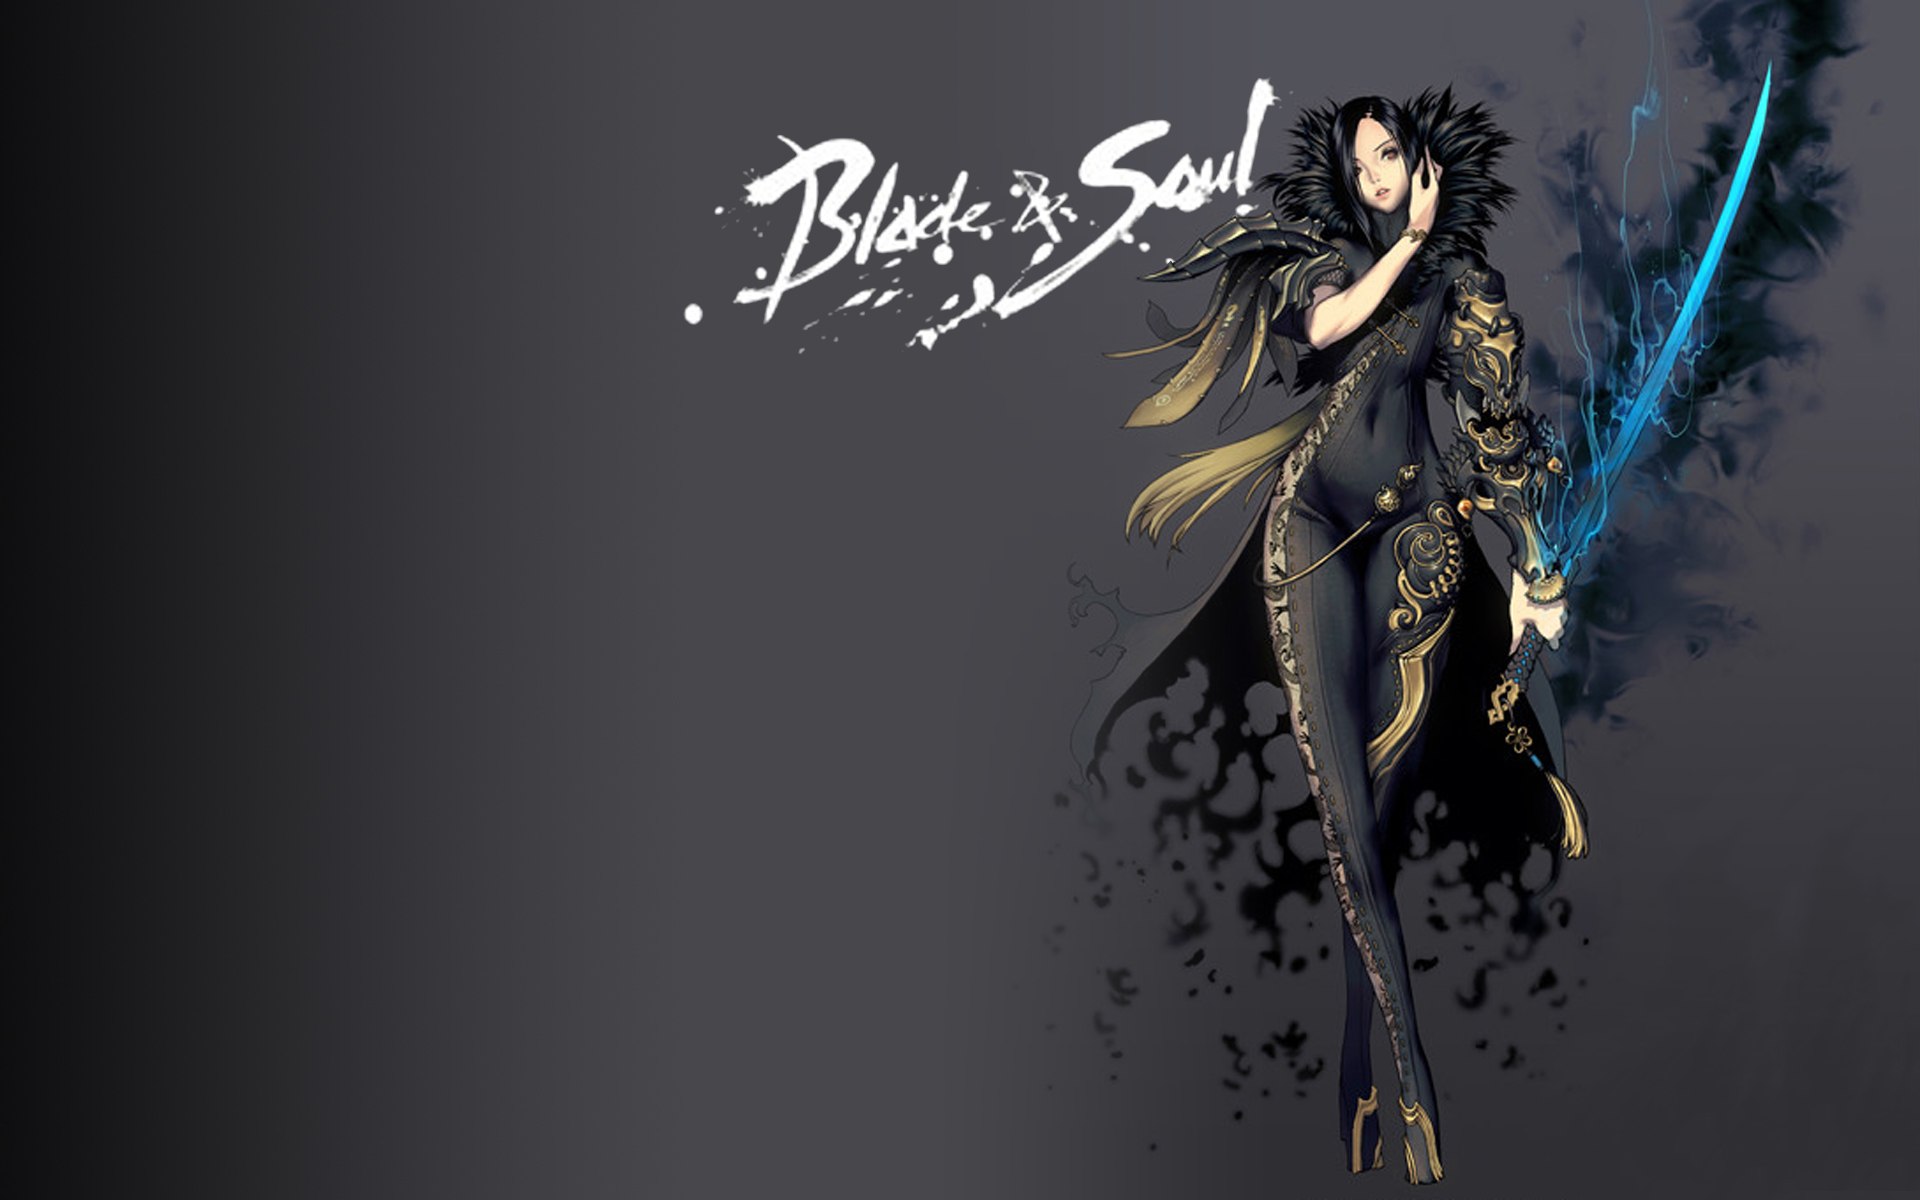 Blade and Soul Wallpapers Game HD Desktop Wallpapers 1920x1200